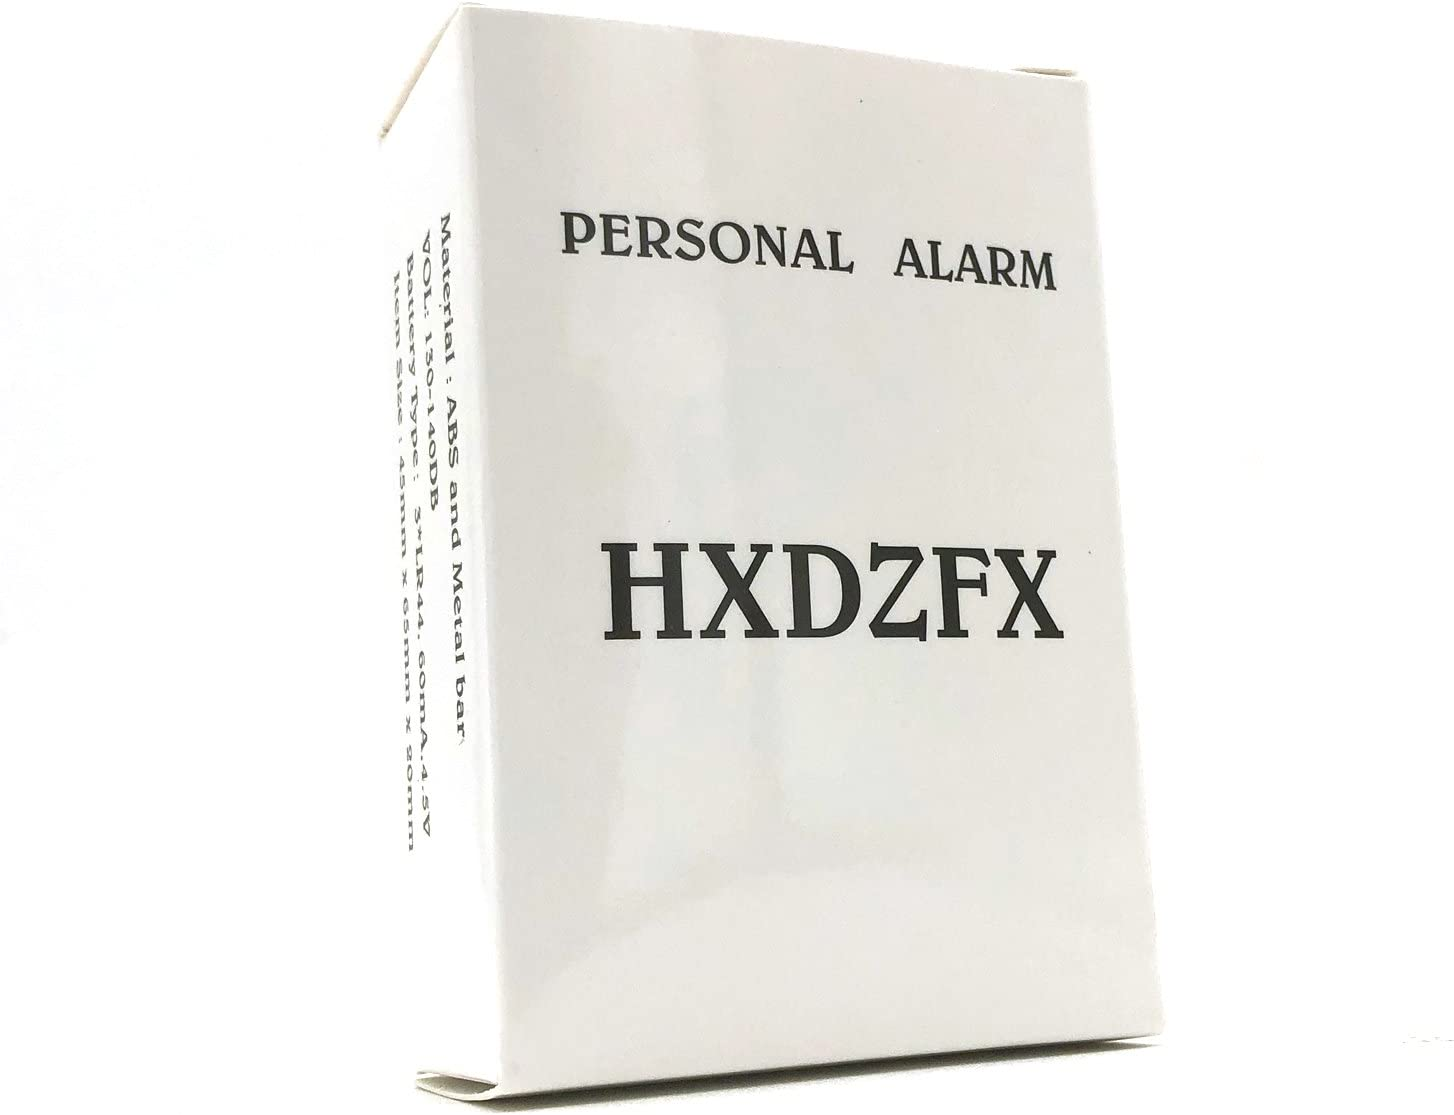 3 Pack HXDZFX Emergency Personal Alarm,135DB Self-Defense Electronic Device Security Alarm Keychain with LED Light for Women Kids Girls Elderly Safety